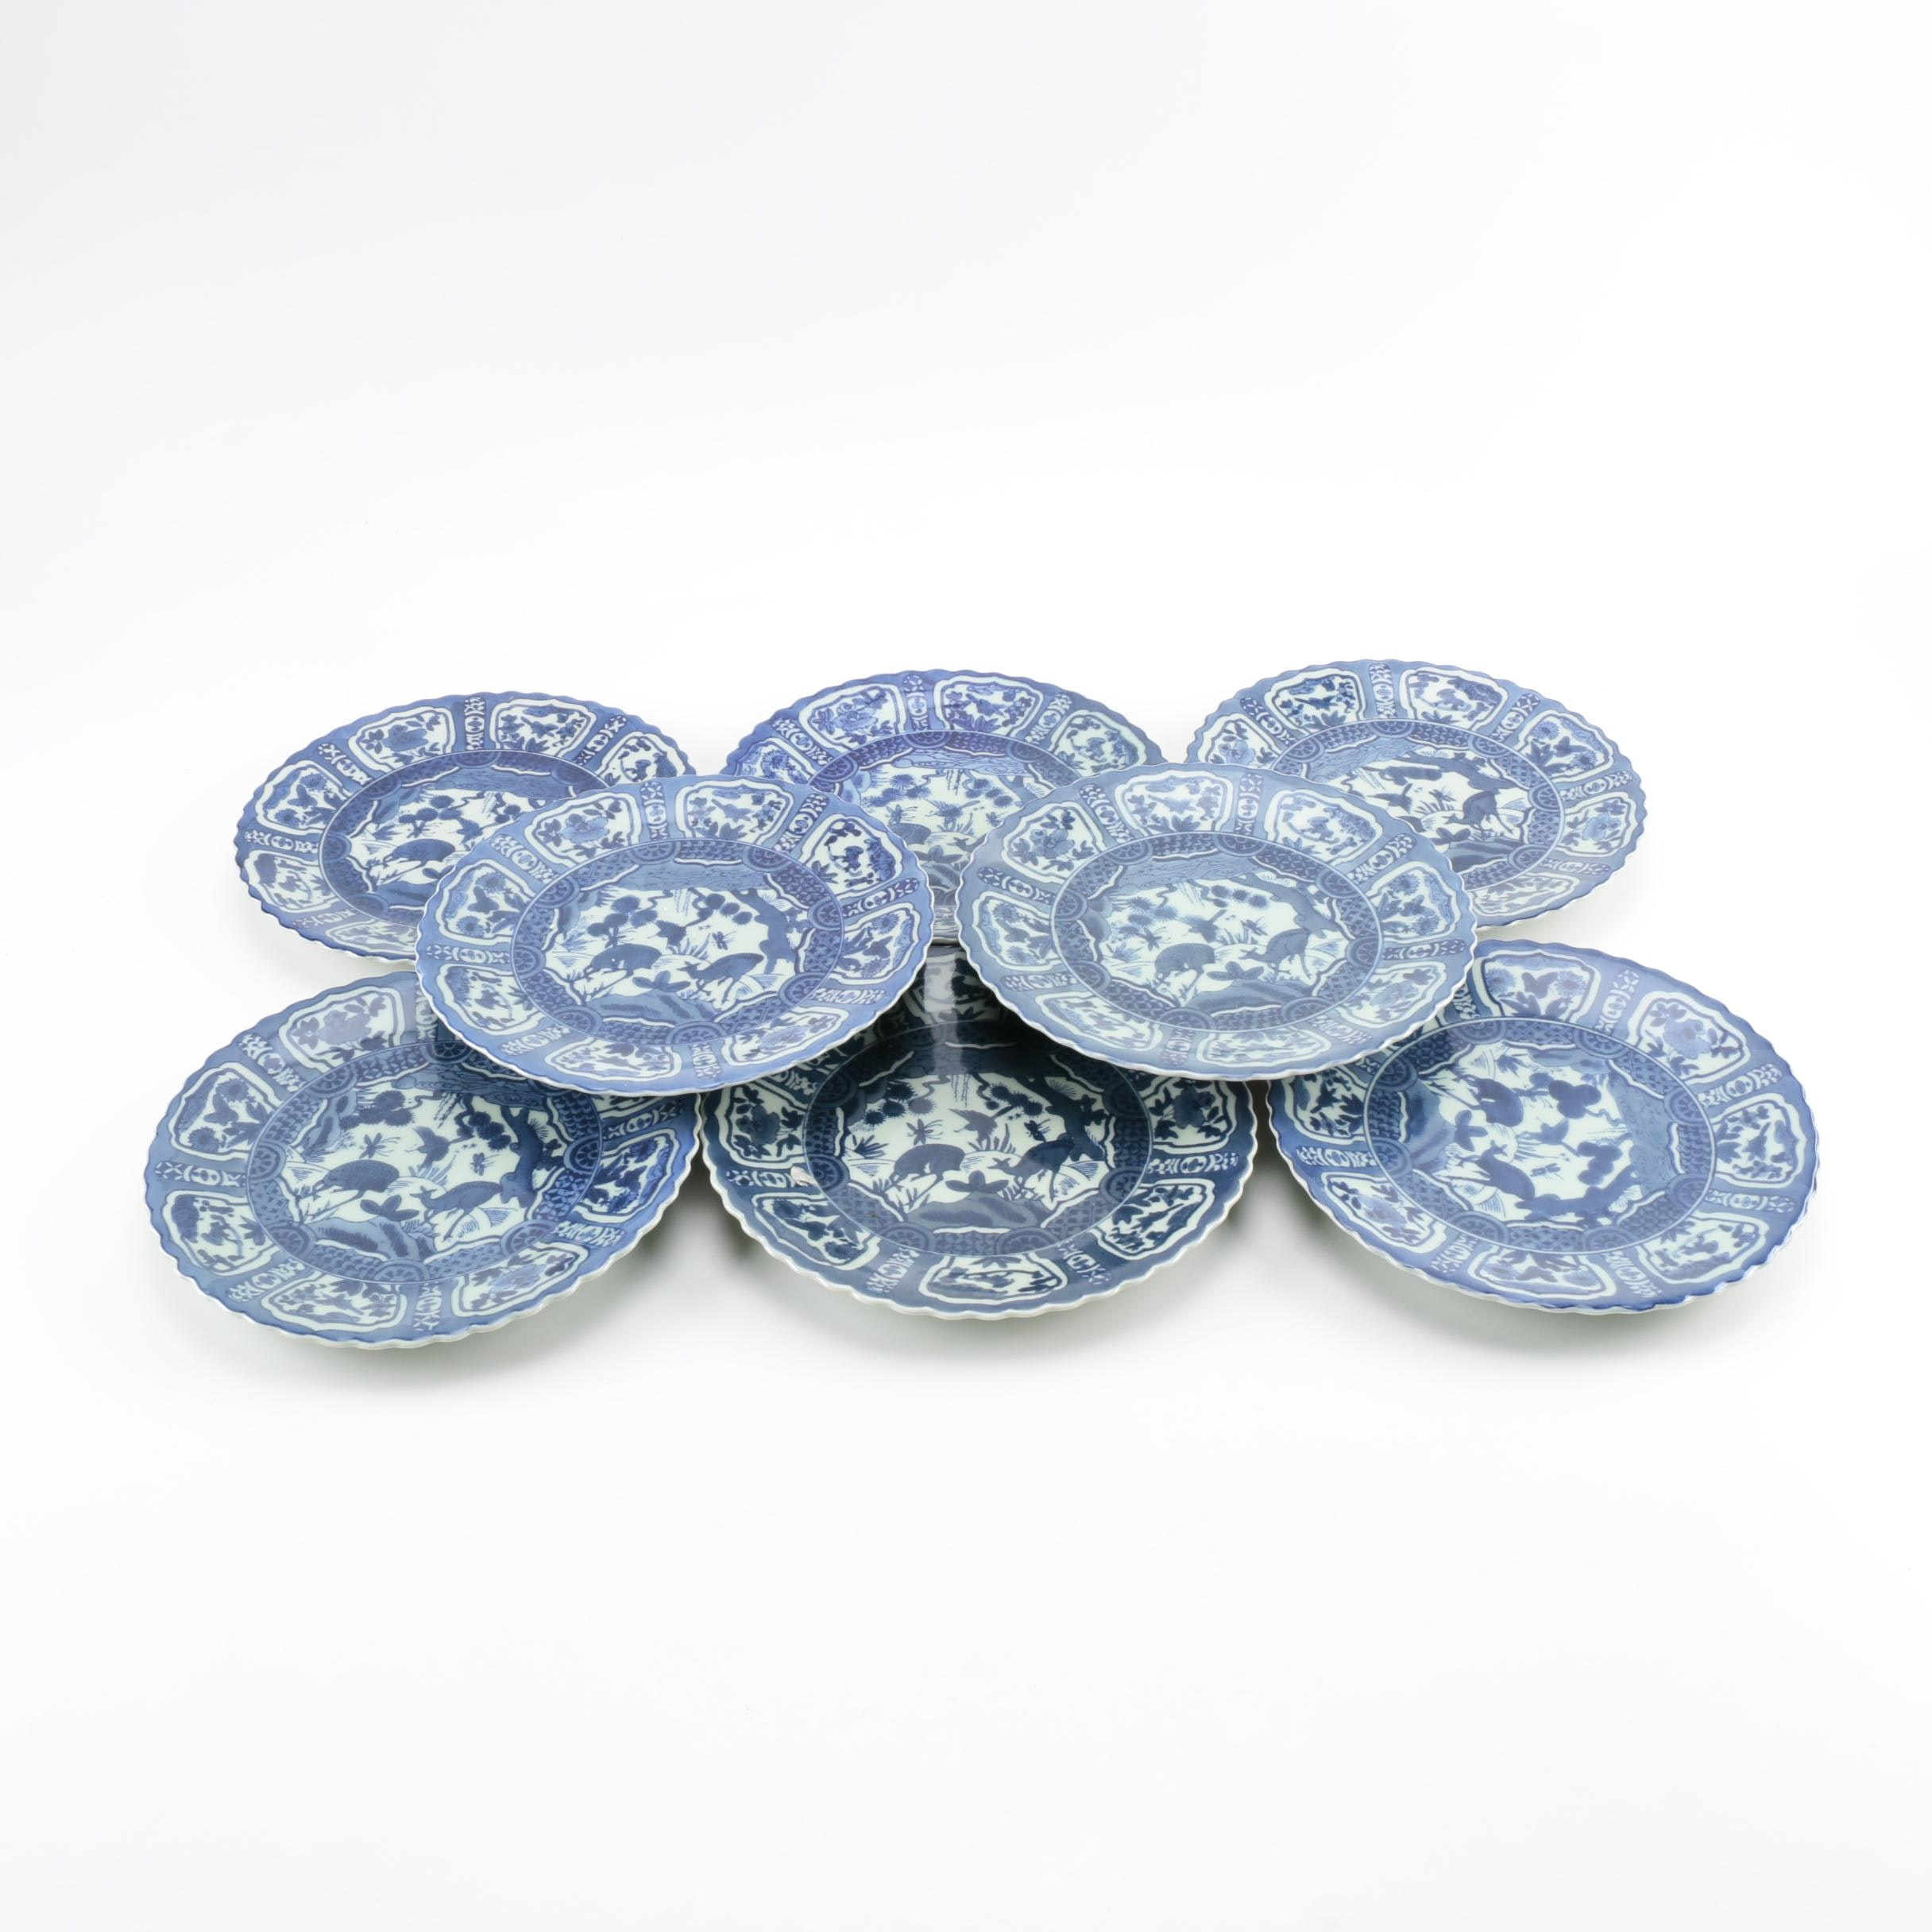 Kraak Style Chinese Porcelain Plates